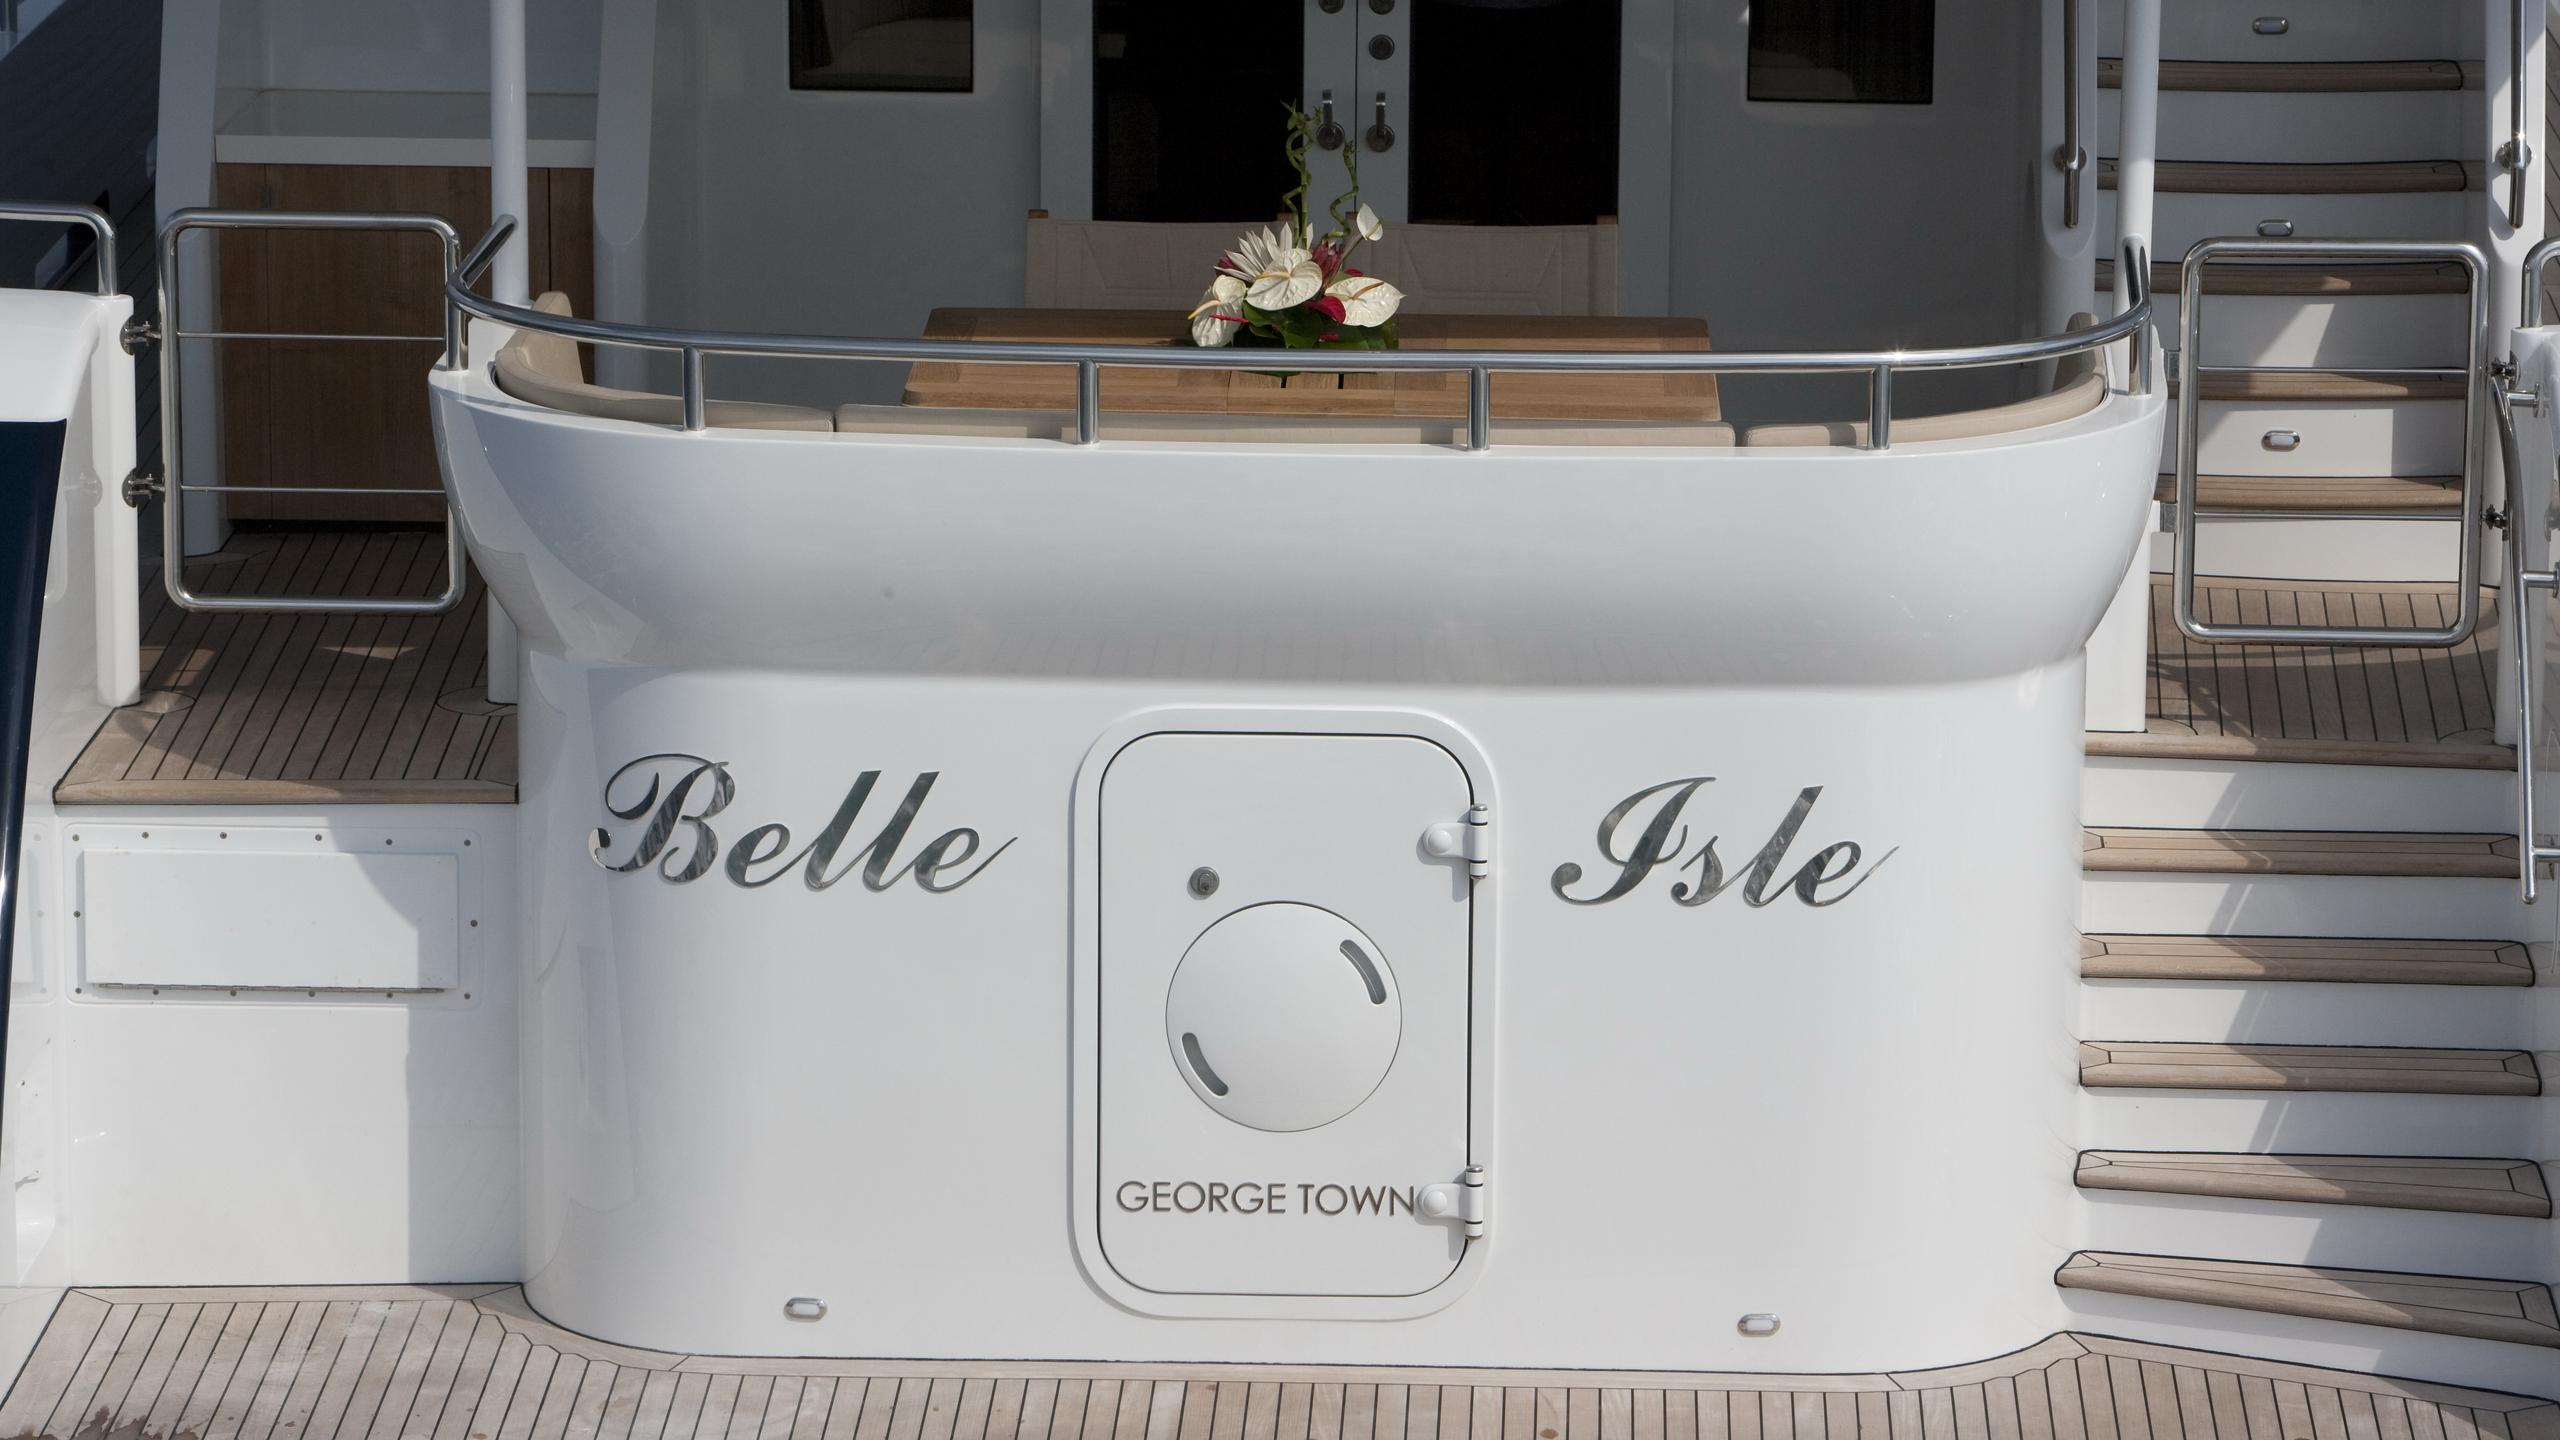 belle-isle-yacht-aft-deck-name